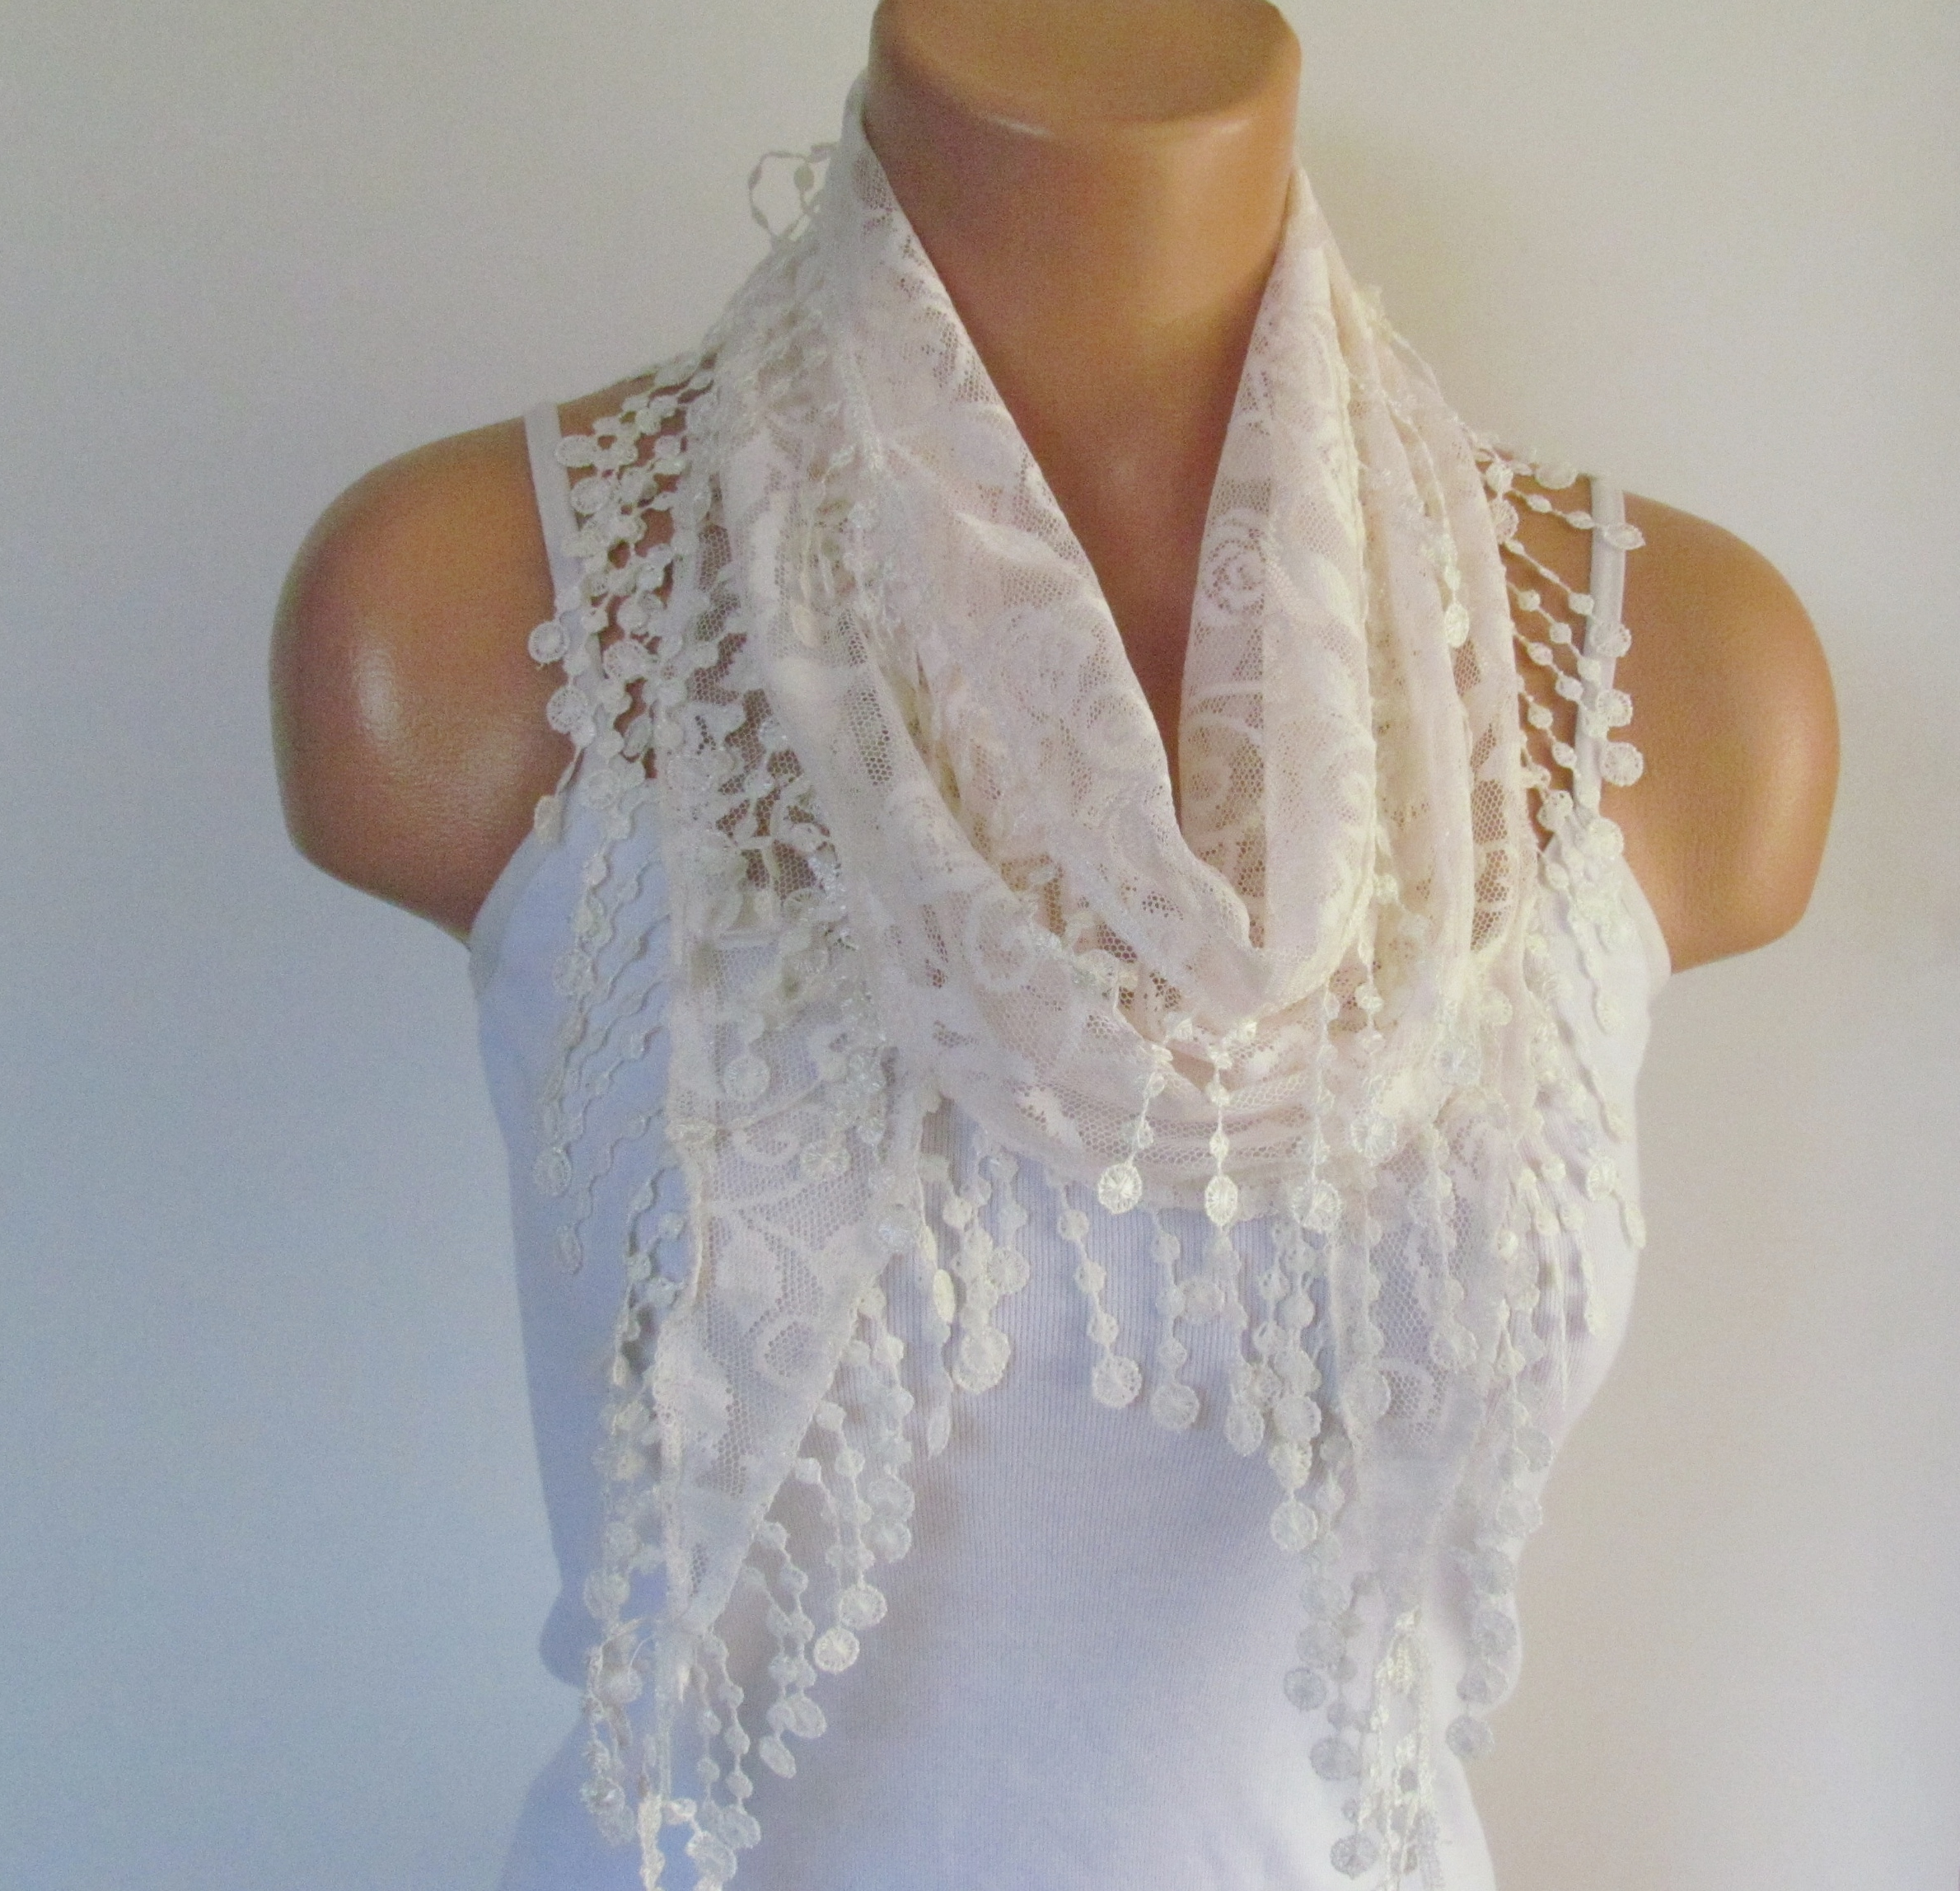 d7a9fe25286ac Cream Lace Scarf With Fringe New Season Scarf-Headband-Necklace- Infinity  Scarf- Accessory-Long Scar on Luulla